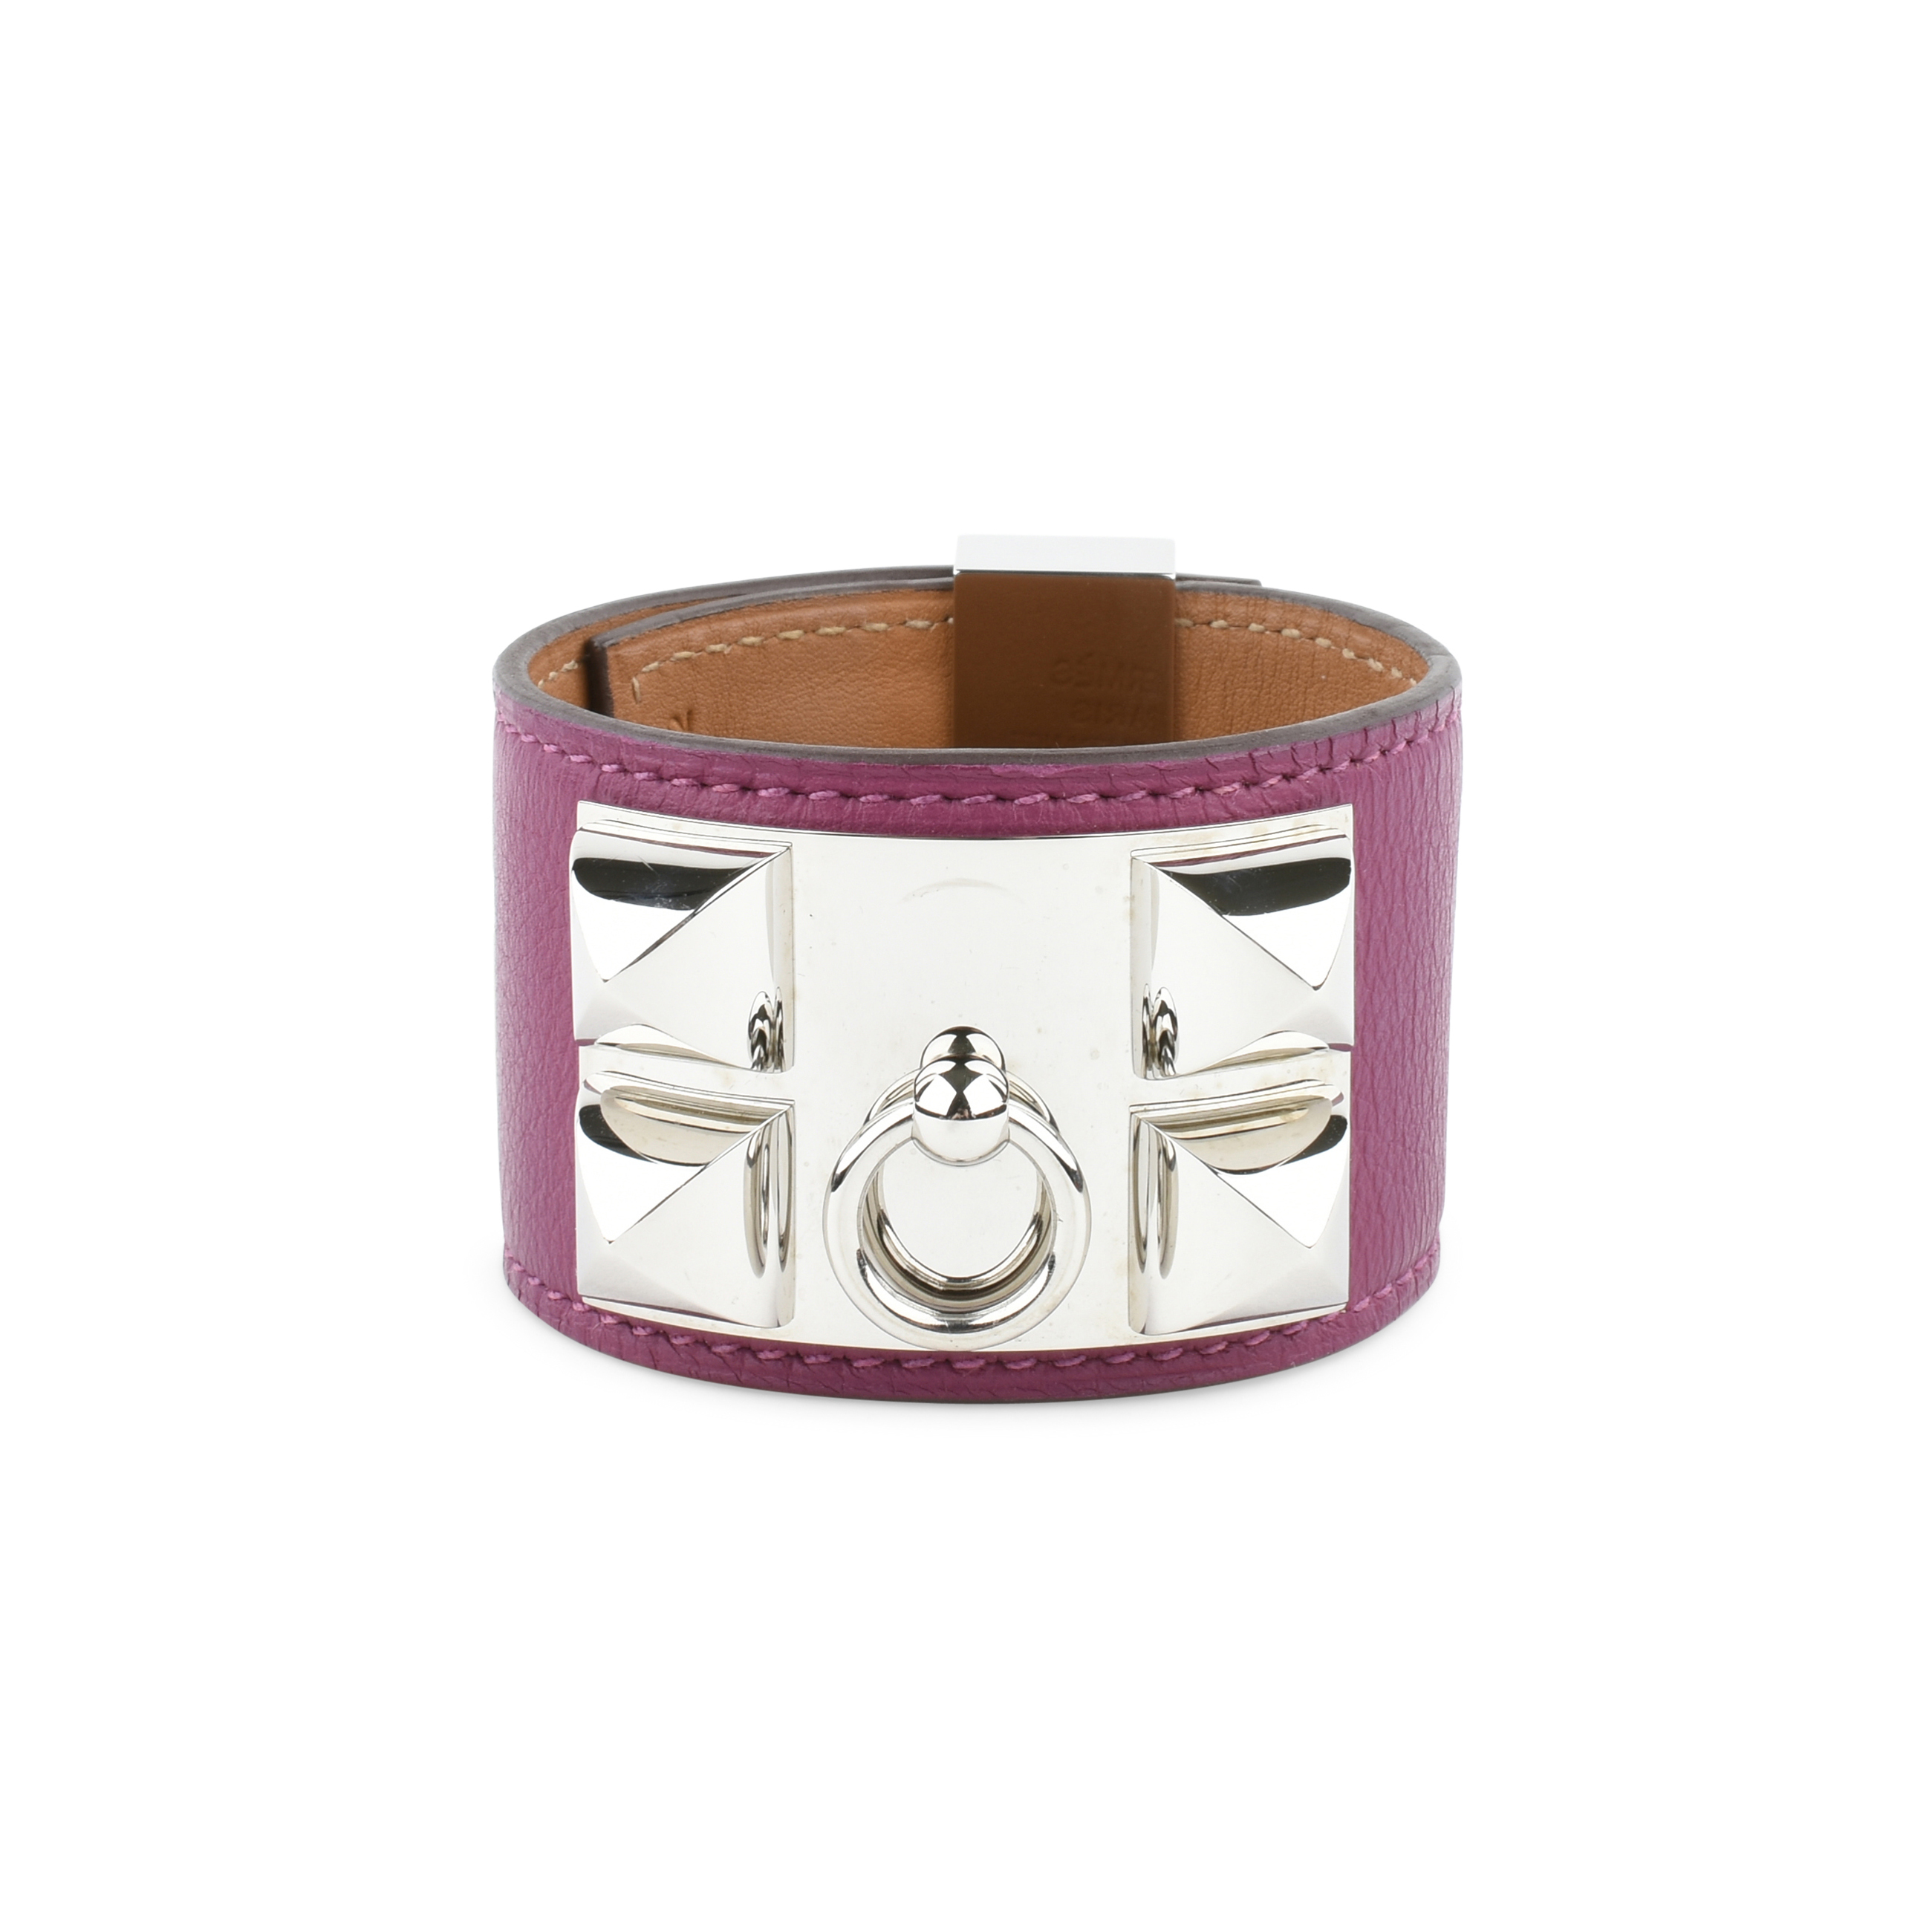 alligator garderobe bracelet hermes products kelly plated de cuff dog swift collier etoupe silver chien